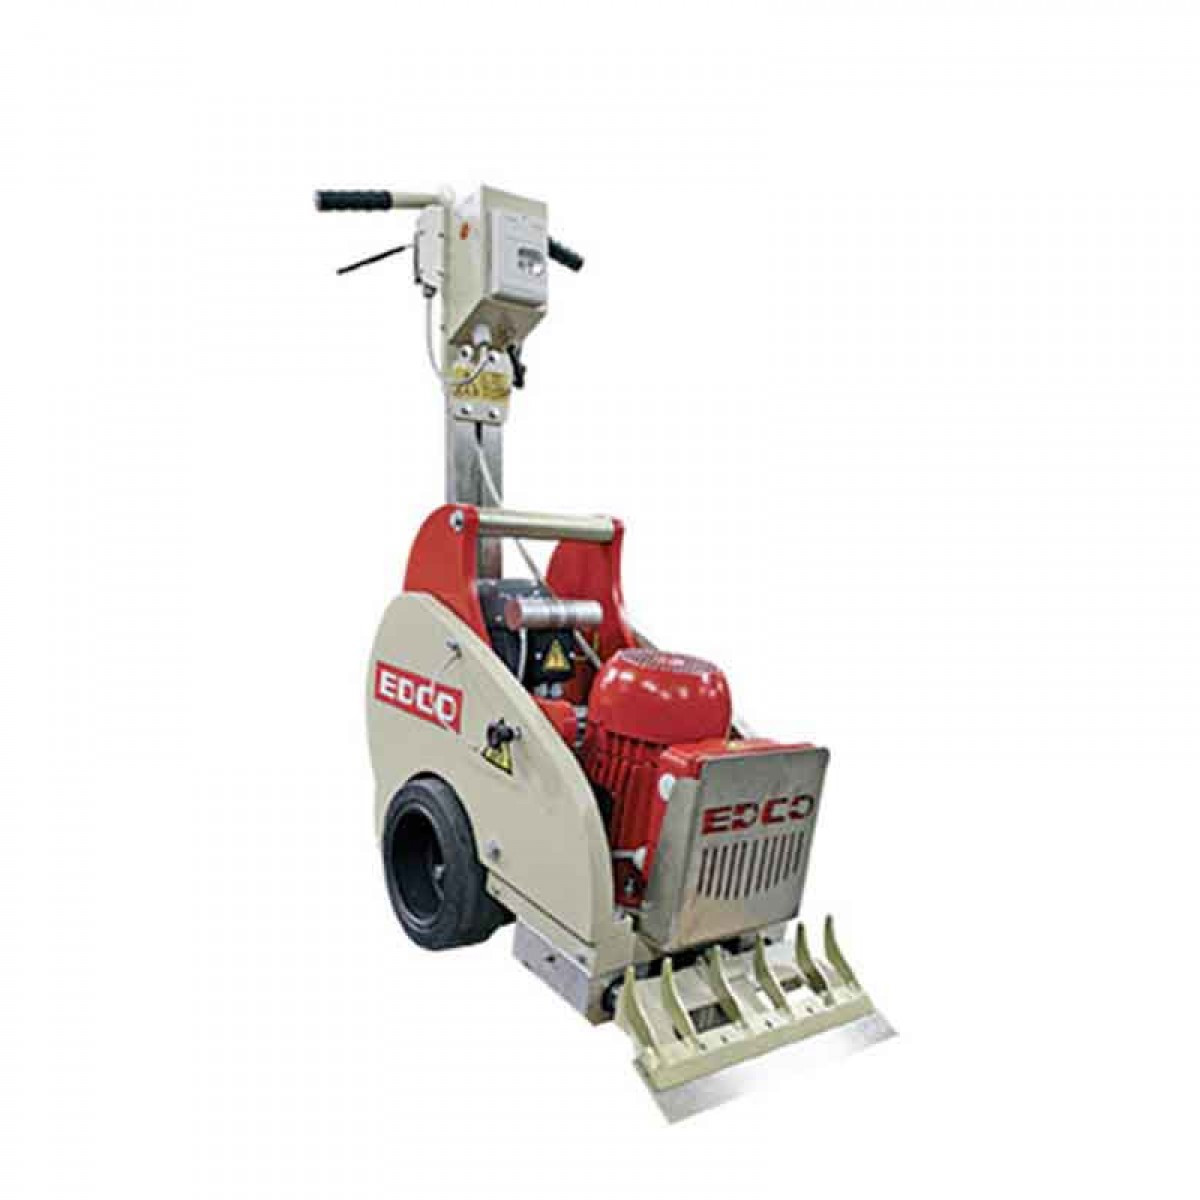 edco ts 14 tile shark electric floor stripper replaced by contec bull stripper